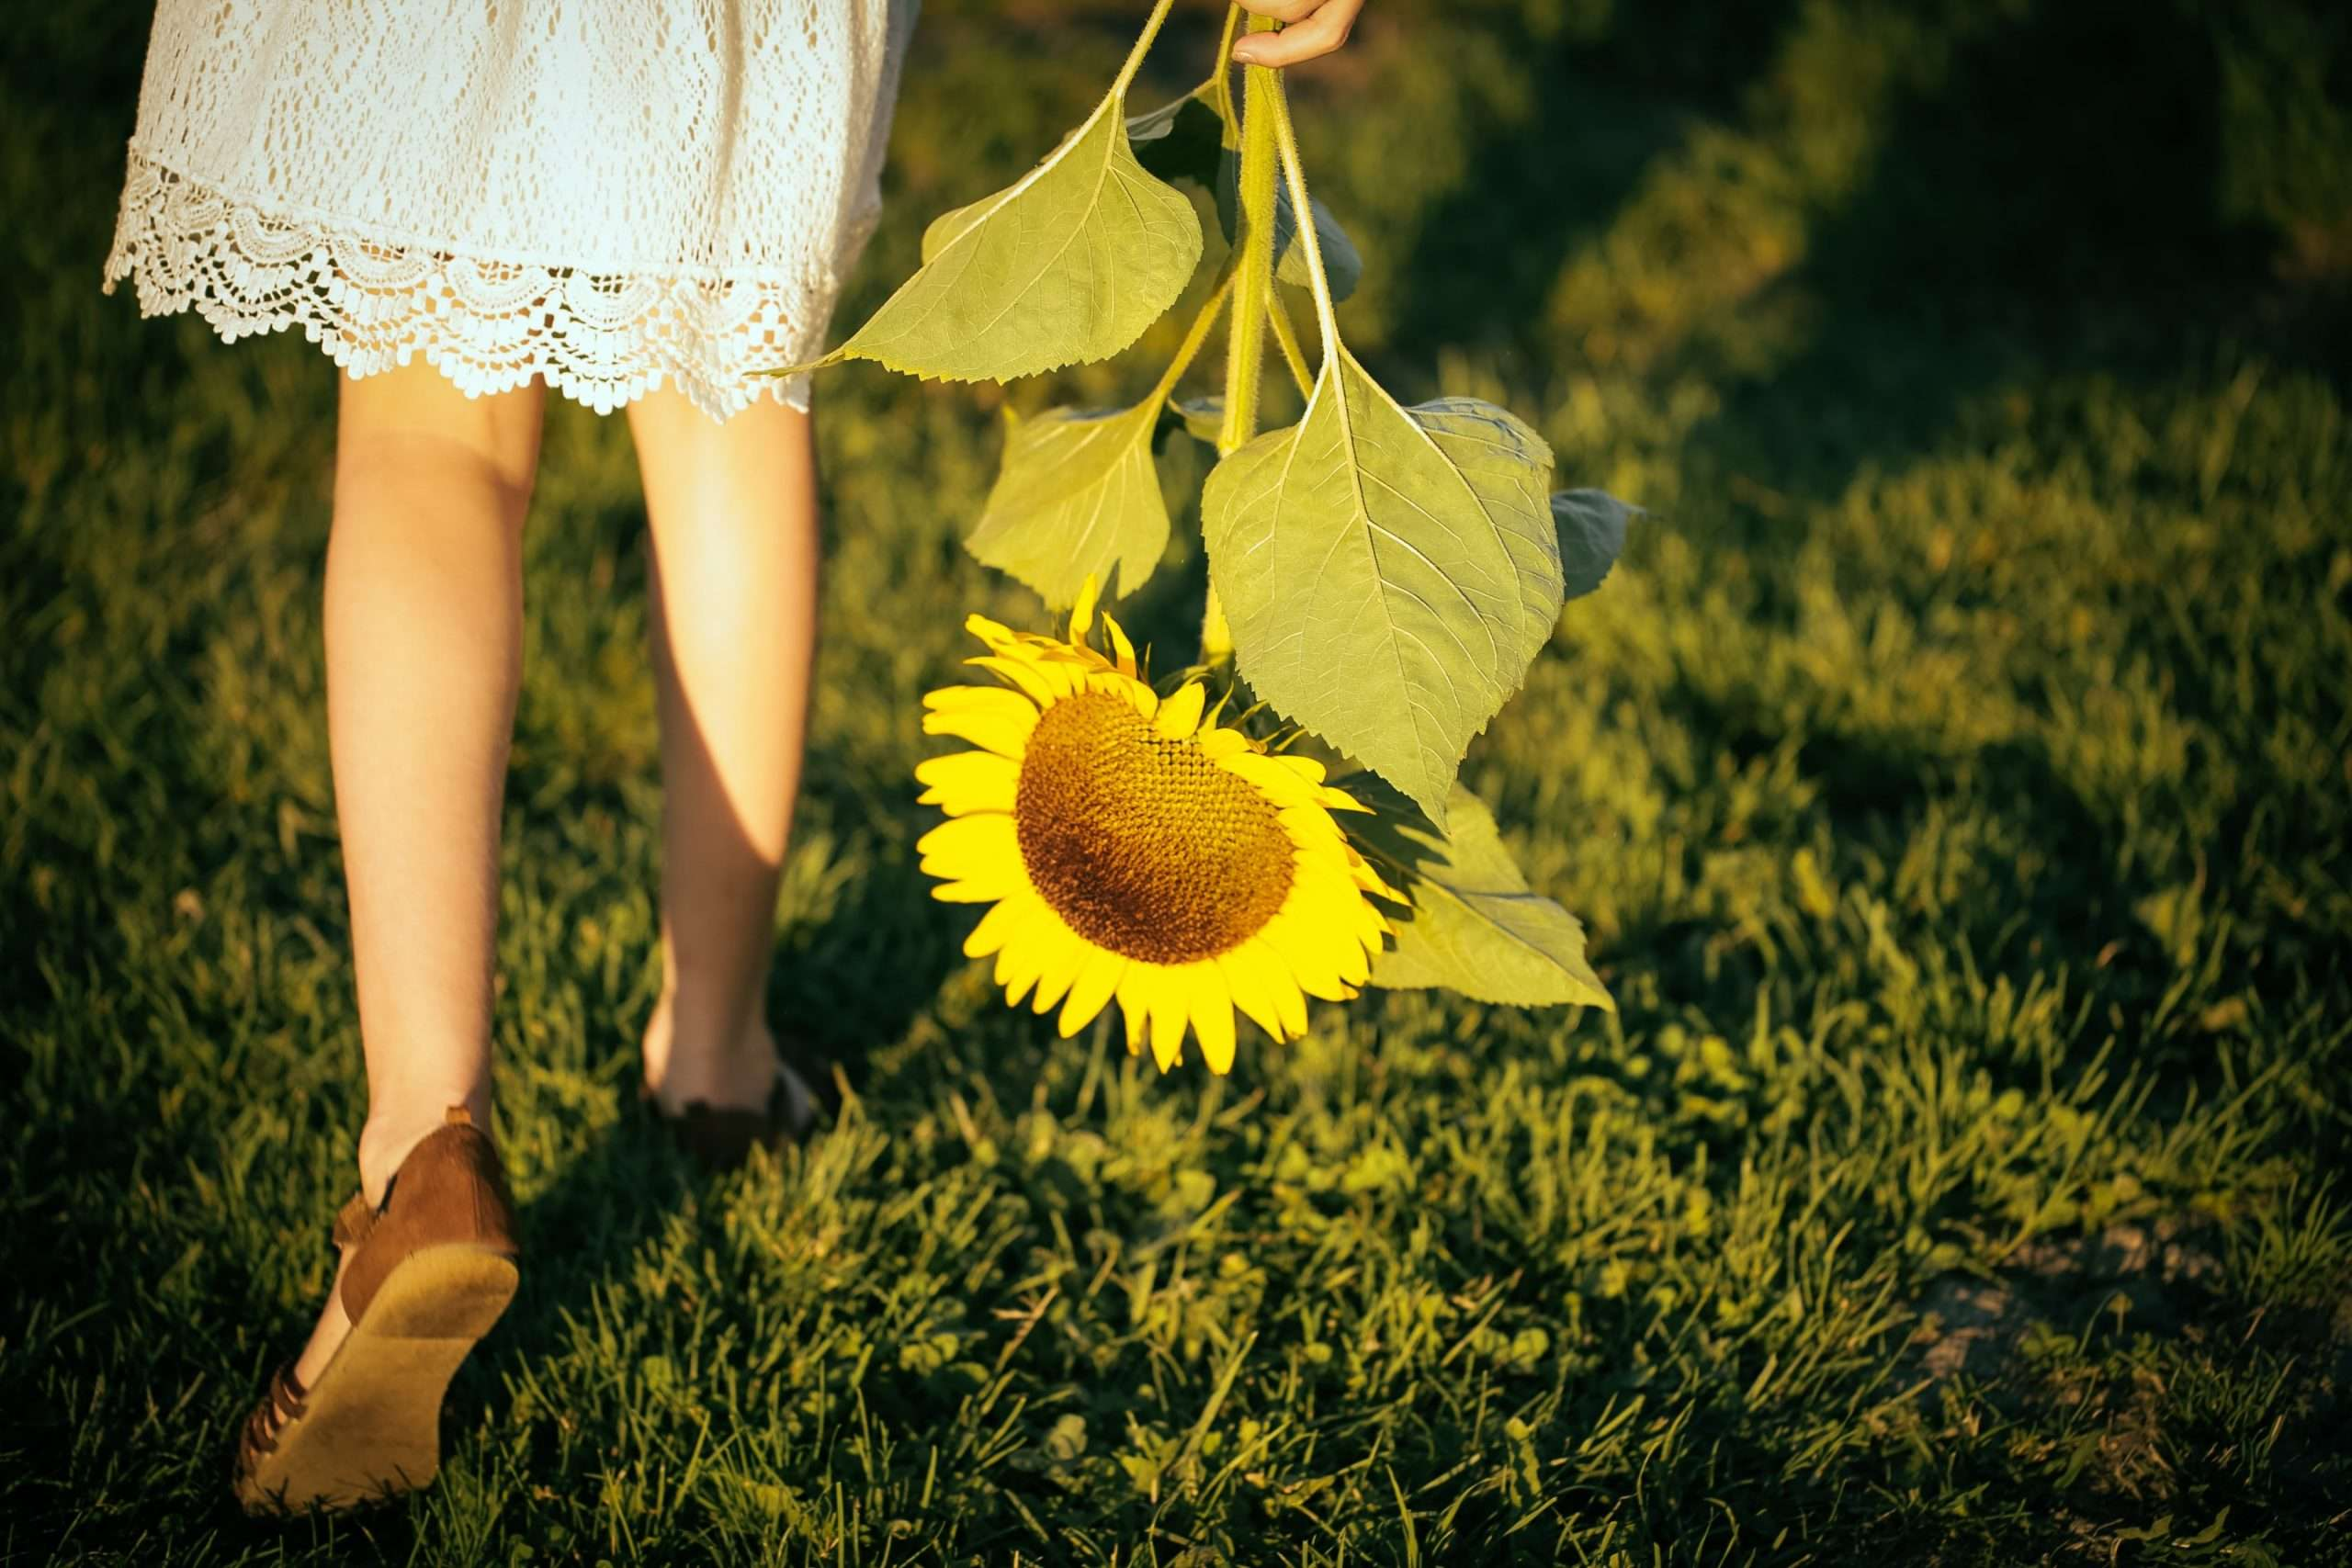 young woman walking across grass holding sunflower